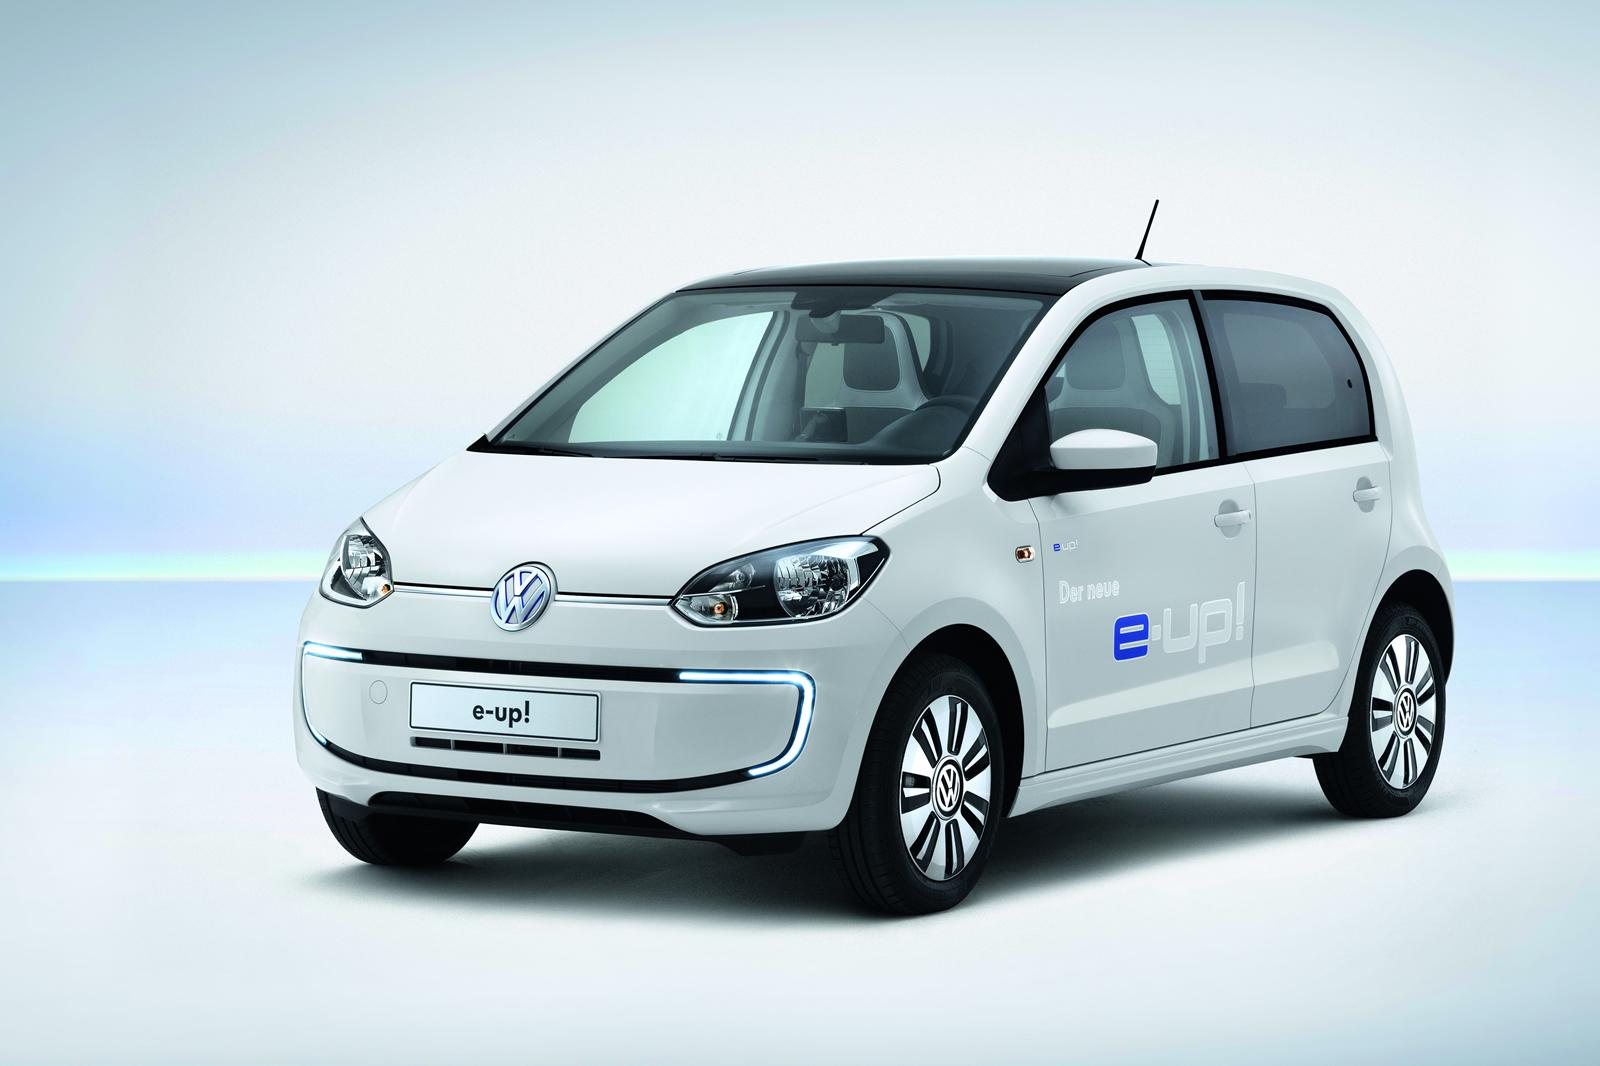 2014 Volkswagen e-up!